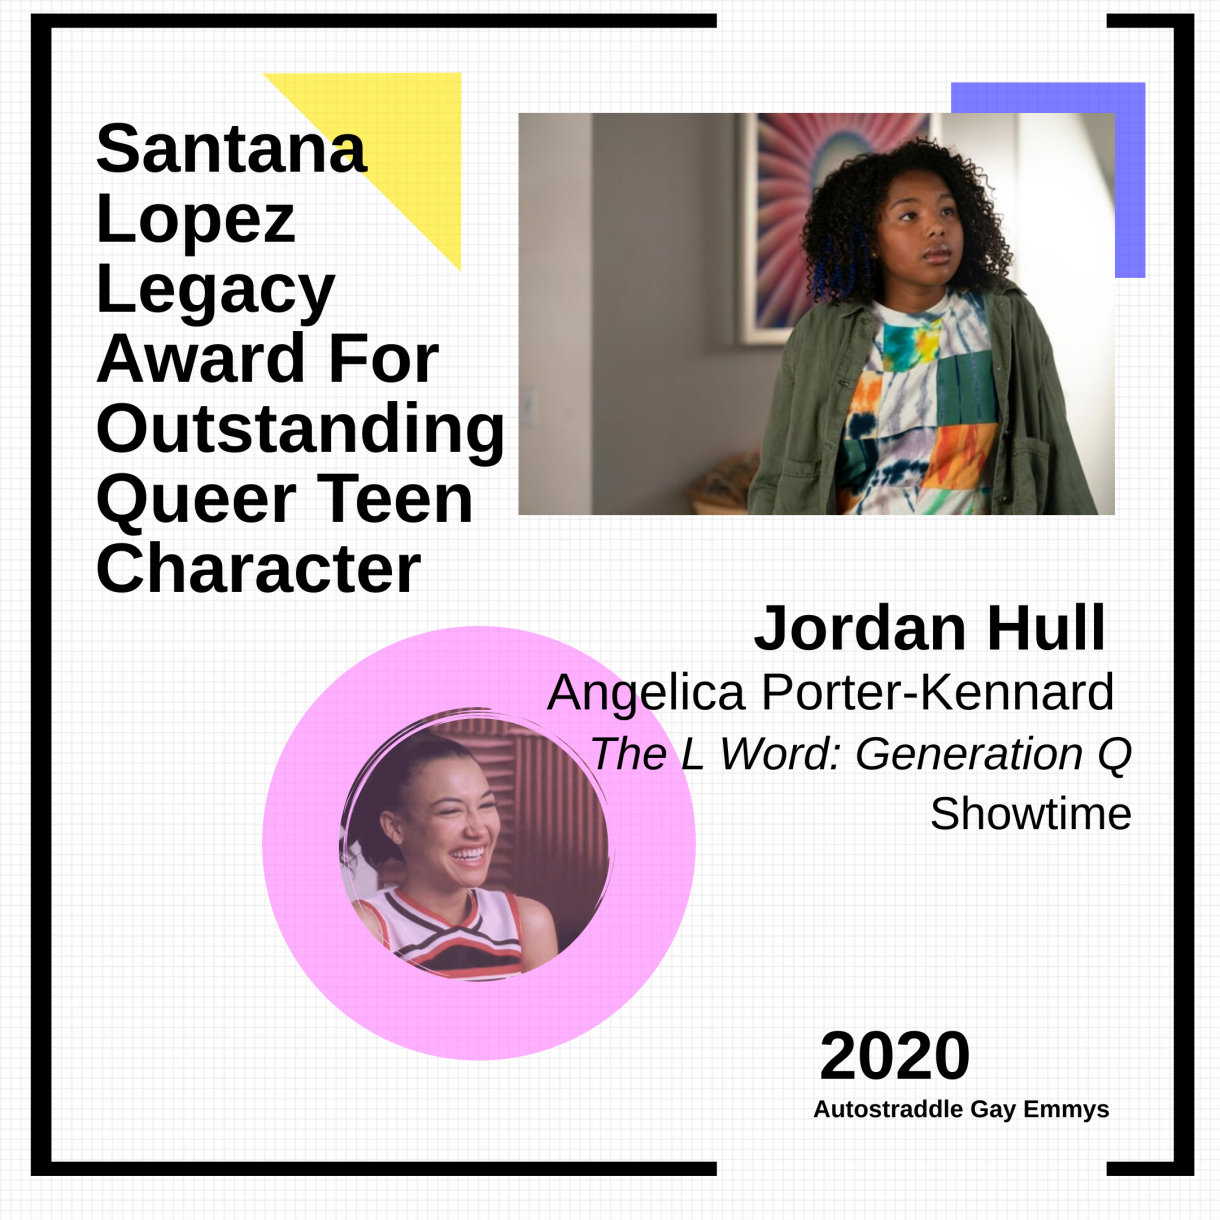 Colorful graphic for Santana Lopez Legacy Award For Outstanding Queer Teen Character: Jordan Hull as Angelica, The L Word: Generation Q (Showtime). Picture of Santana in a cheerleader uniform with a pink circle in one corner, picture of Jordan Hull as Angie in the other.